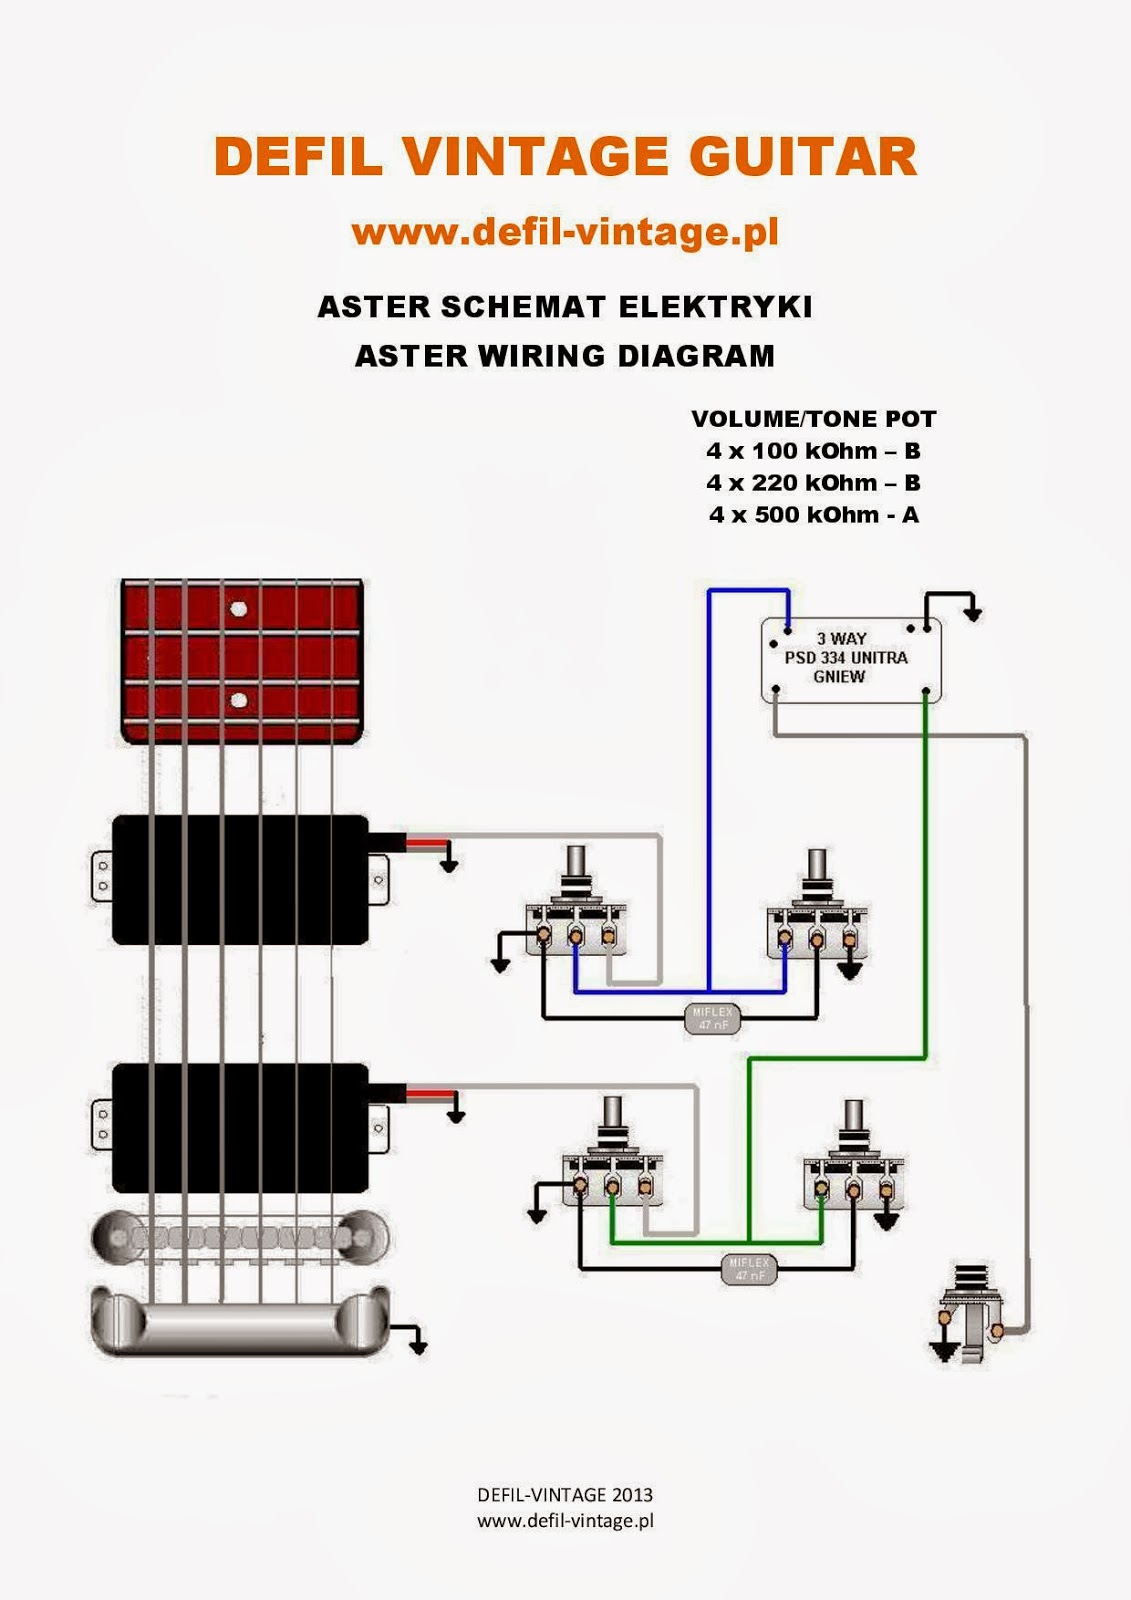 WIRING DIAGRAM DEFIL